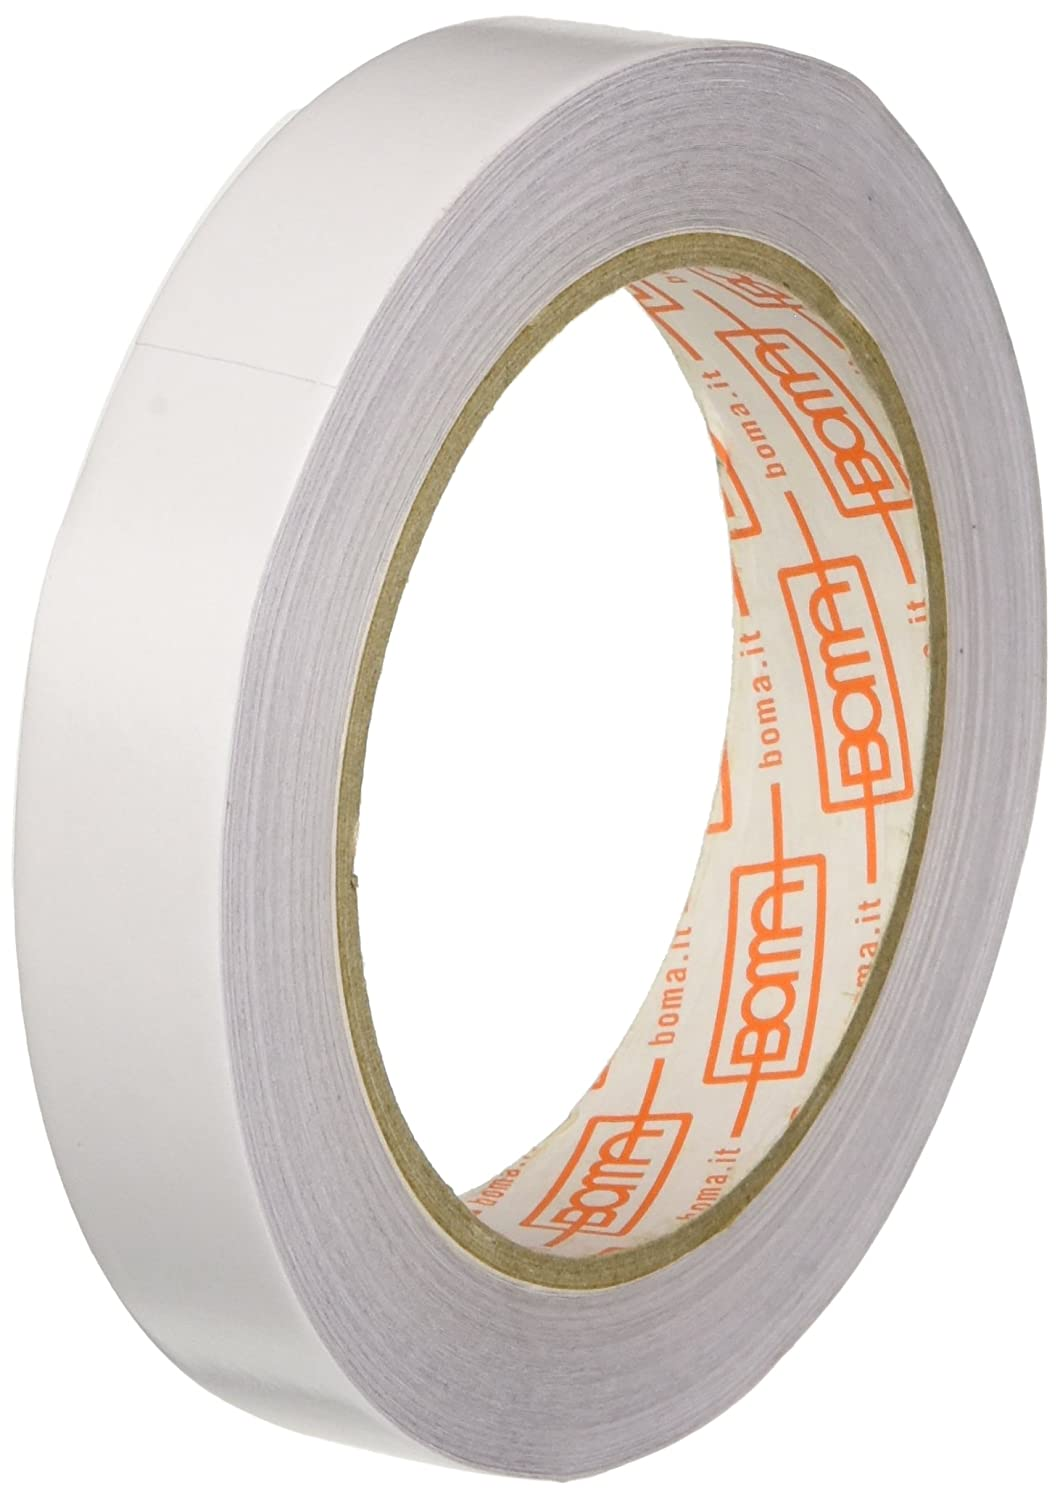 Boma b41321400004  Double Sided Tape with Removable Side for Posters, Paper, cardboard, does not damage Surfaces, 19  mm x 25  mt 19 mm x 25 mt 8013074001967